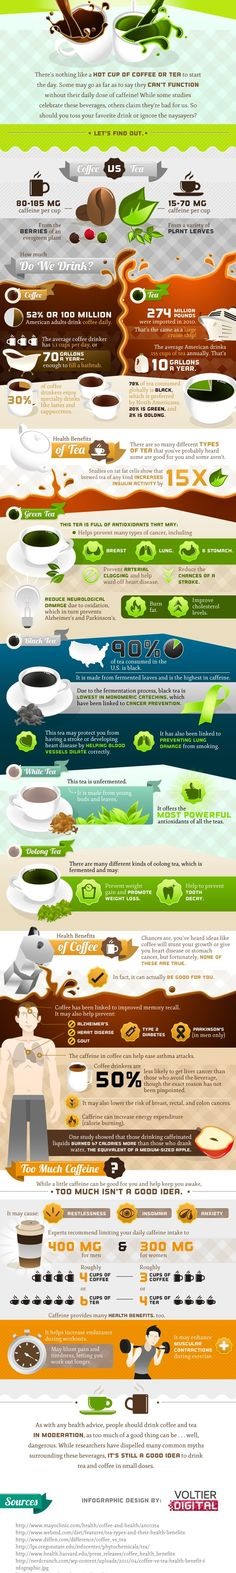 Coffee and Tea Infographic - note, the positive effects of tea on insulin activity is counteracted by adding milk.